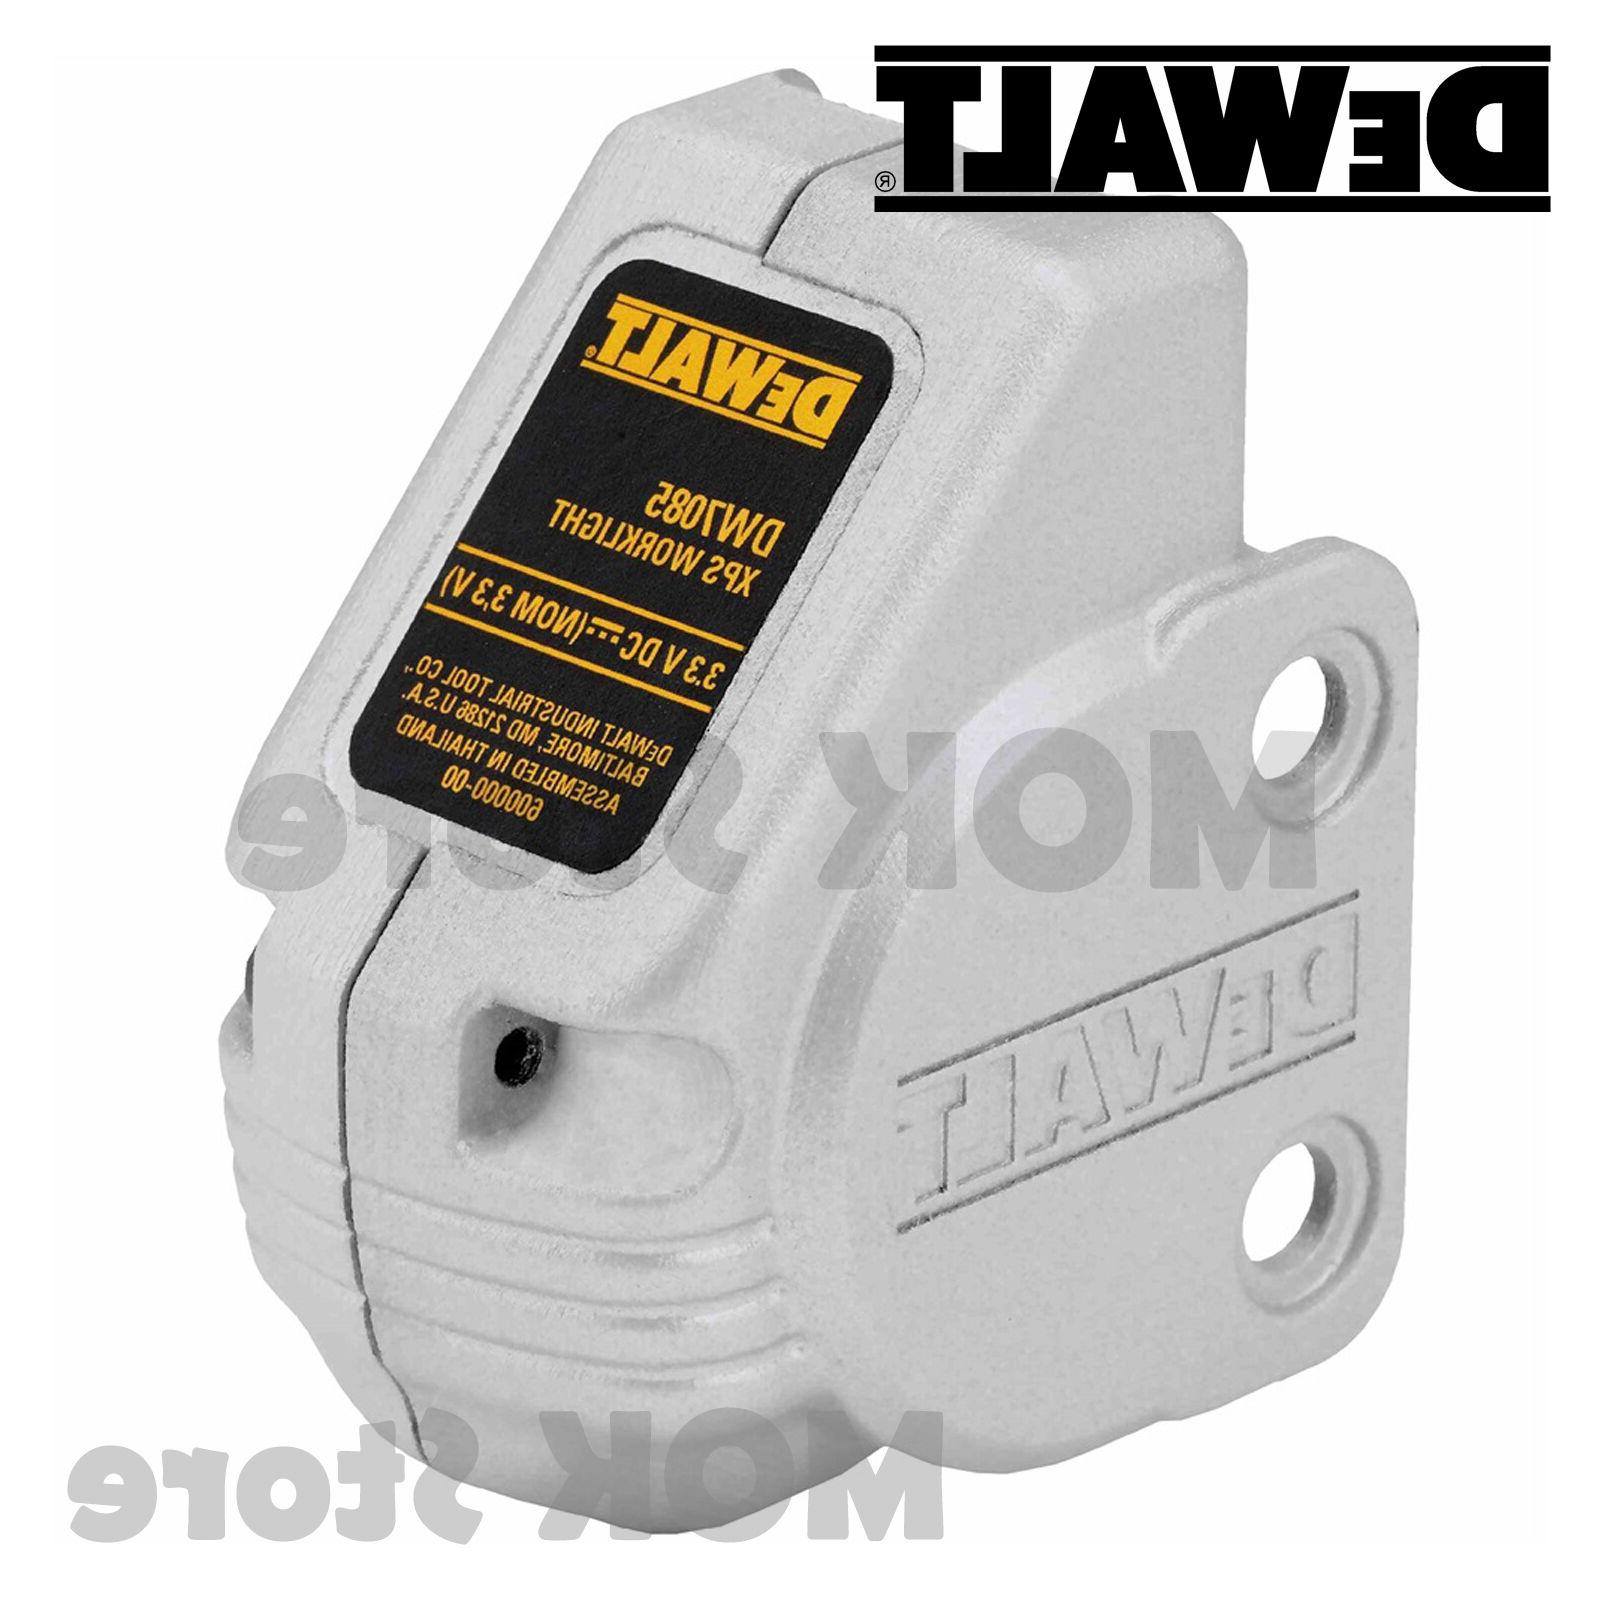 DeWalt DWS7085 Miter LED Worklight DW717, / Stock